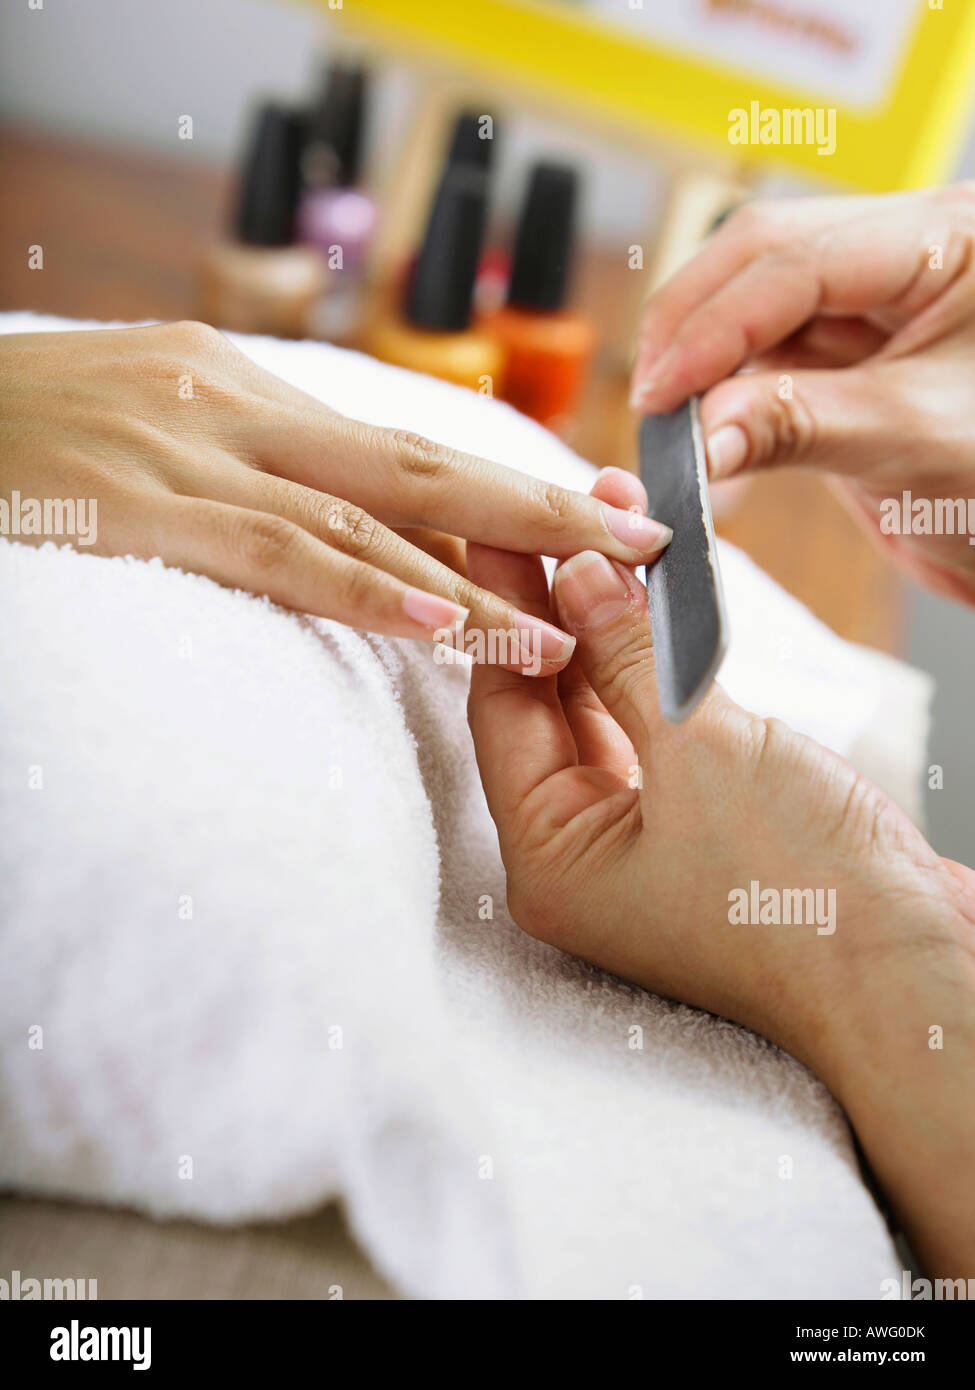 Woman Getting Her Nails Done Stock Photo: 16570782 - Alamy